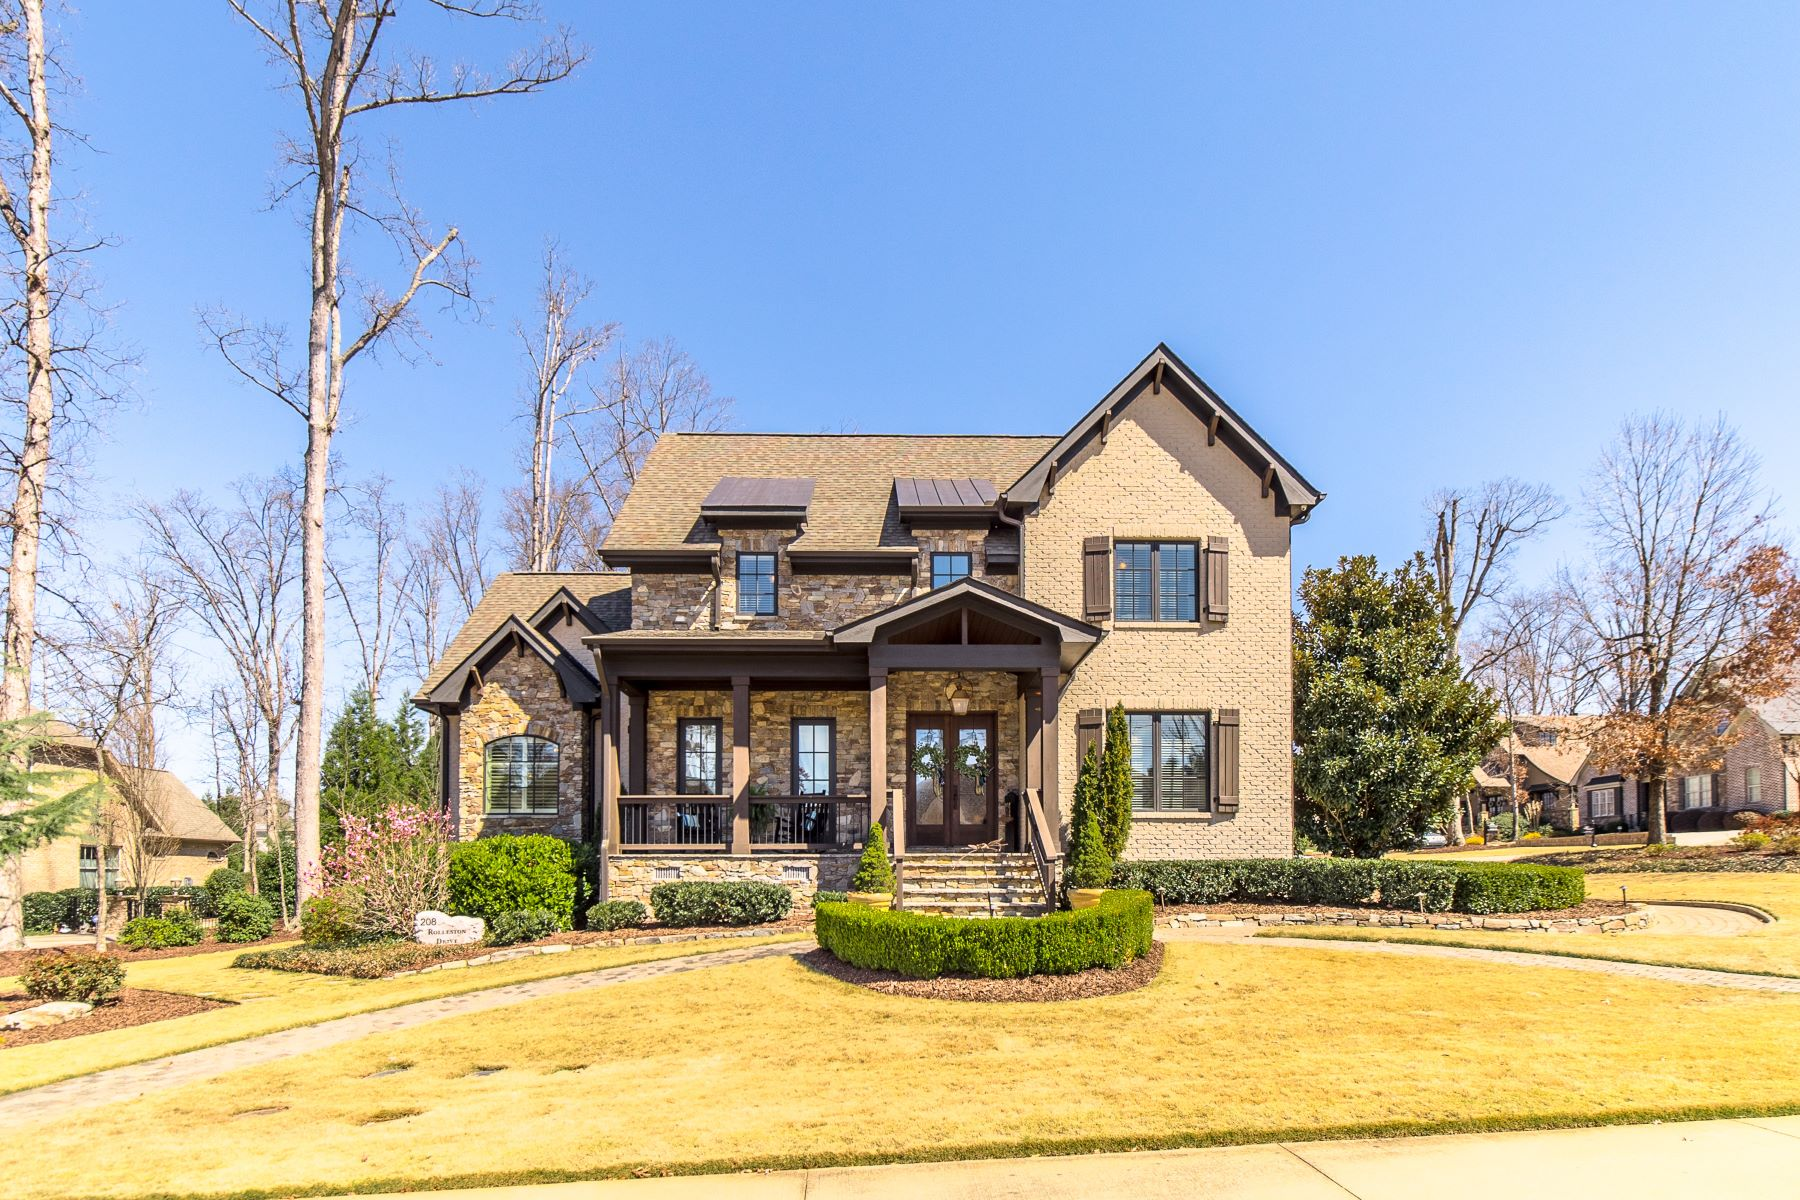 Single Family Homes for Active at Custom Built Claremont Home 208 Rolleston Drive Greenville, South Carolina 29615 United States